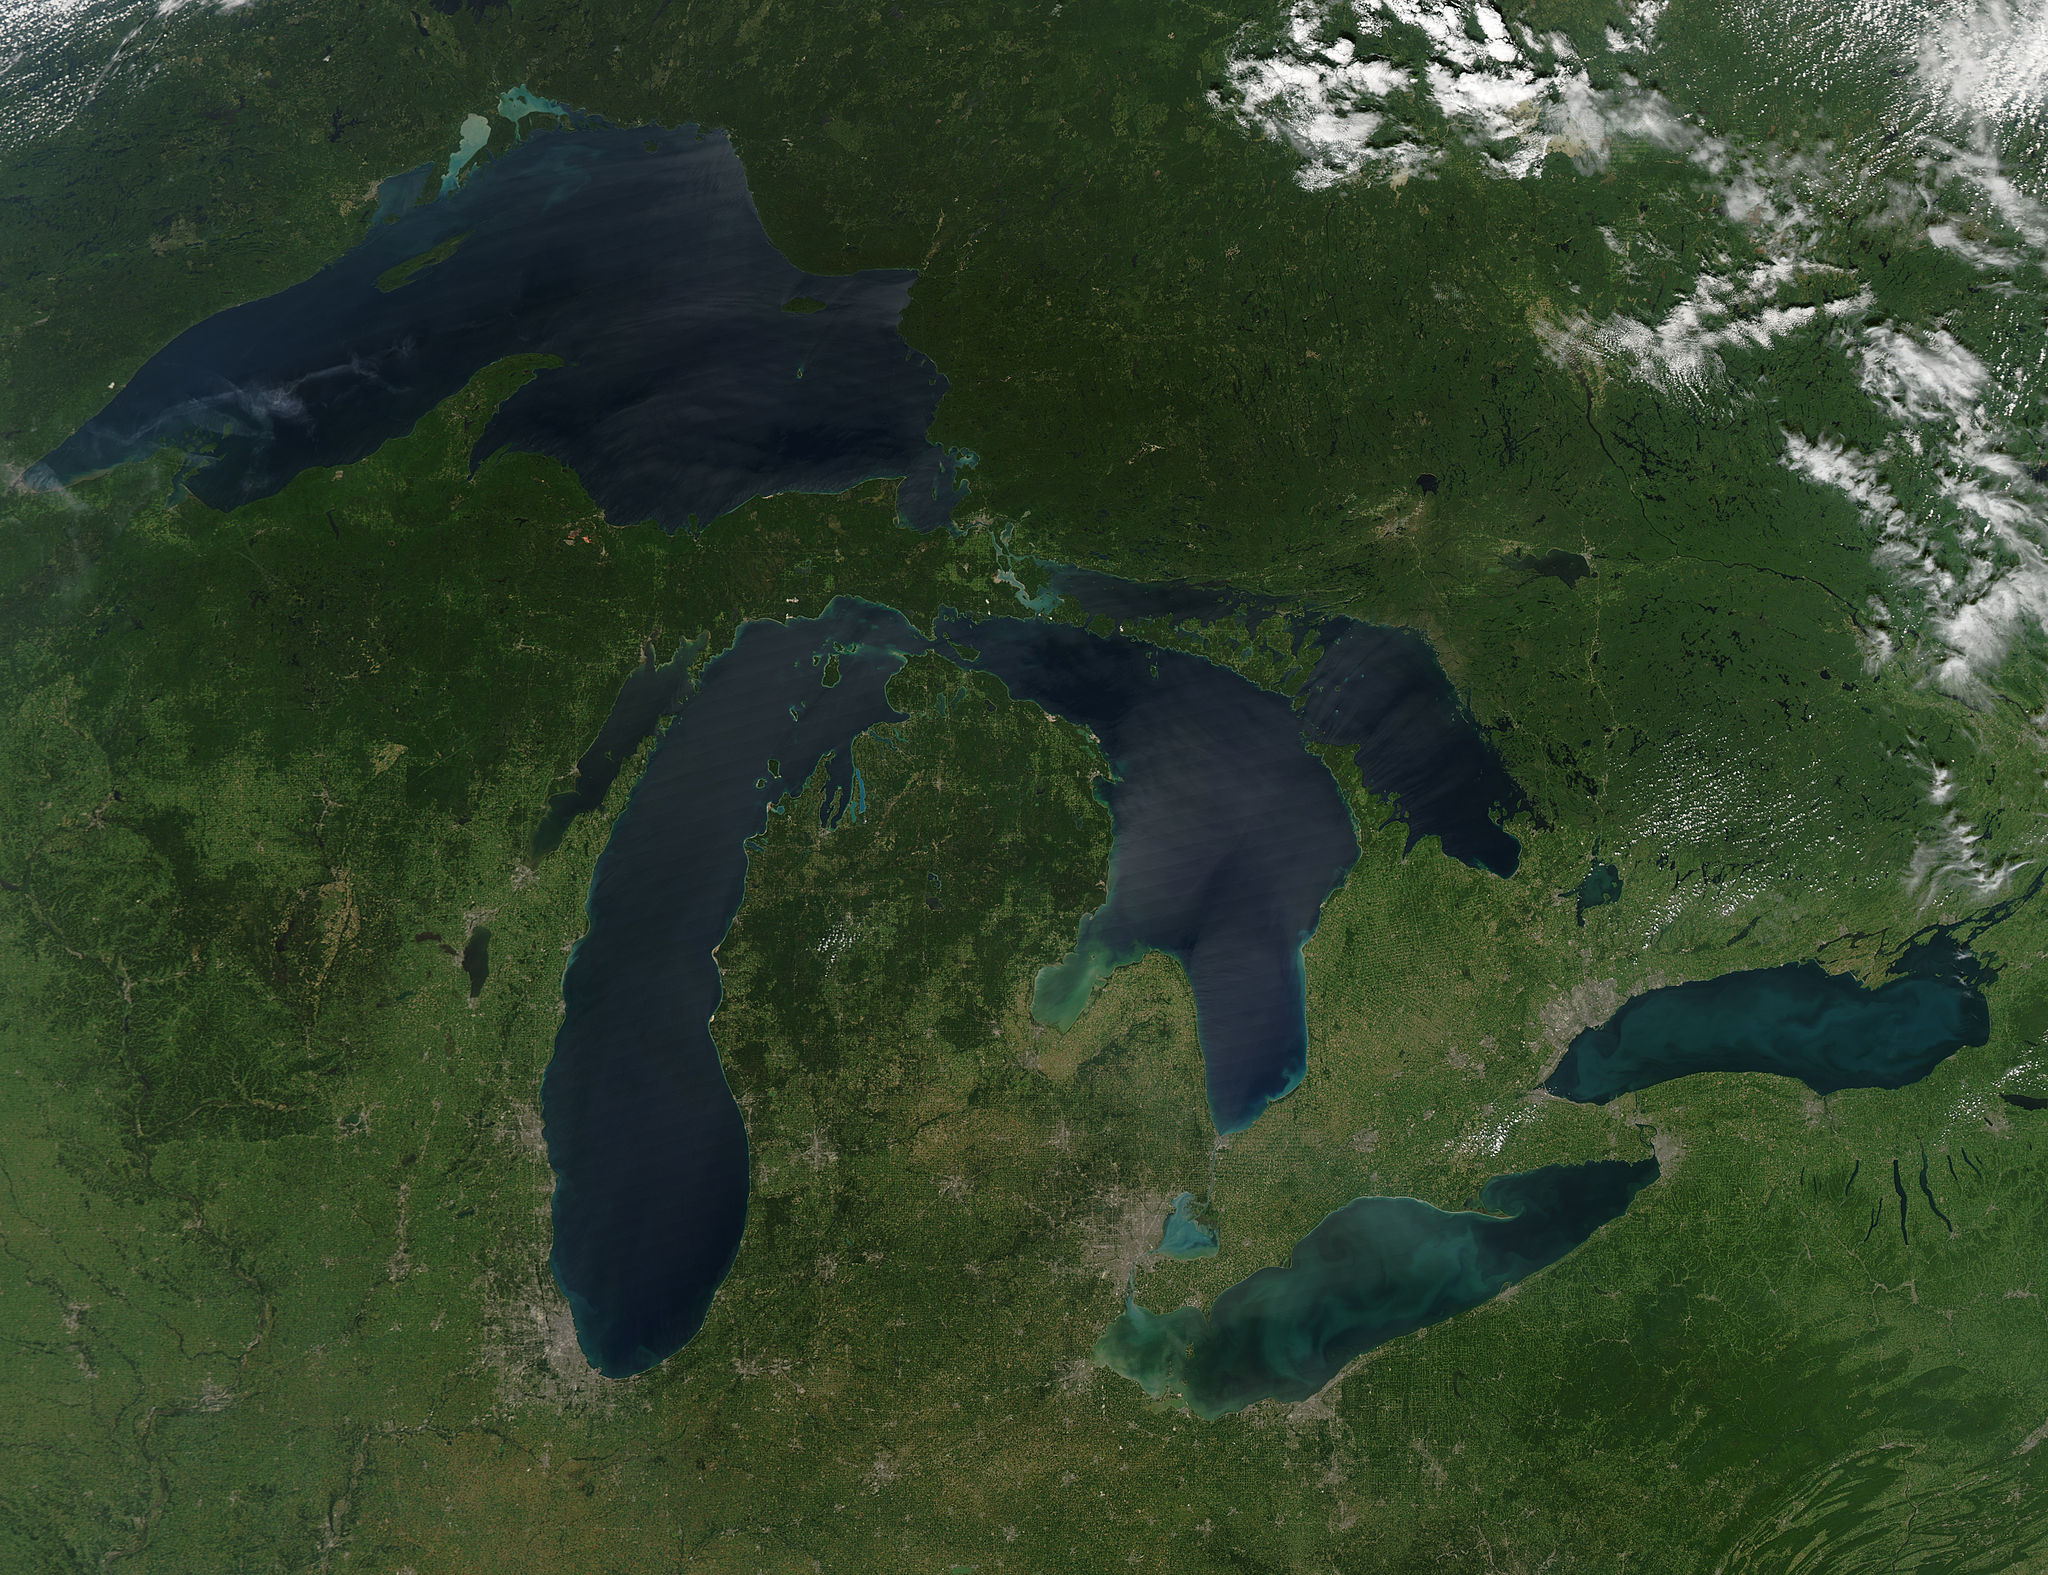 Late August 2010 provided a rare satellite view of a cloudless summer day over the entire Great Lakes region. The image was gathered by the Moderate Resolution Imaging Spectroradiometer (MODIS) on NASA's Aqua satellite. Image credit: NASA via Wikimedia Commons